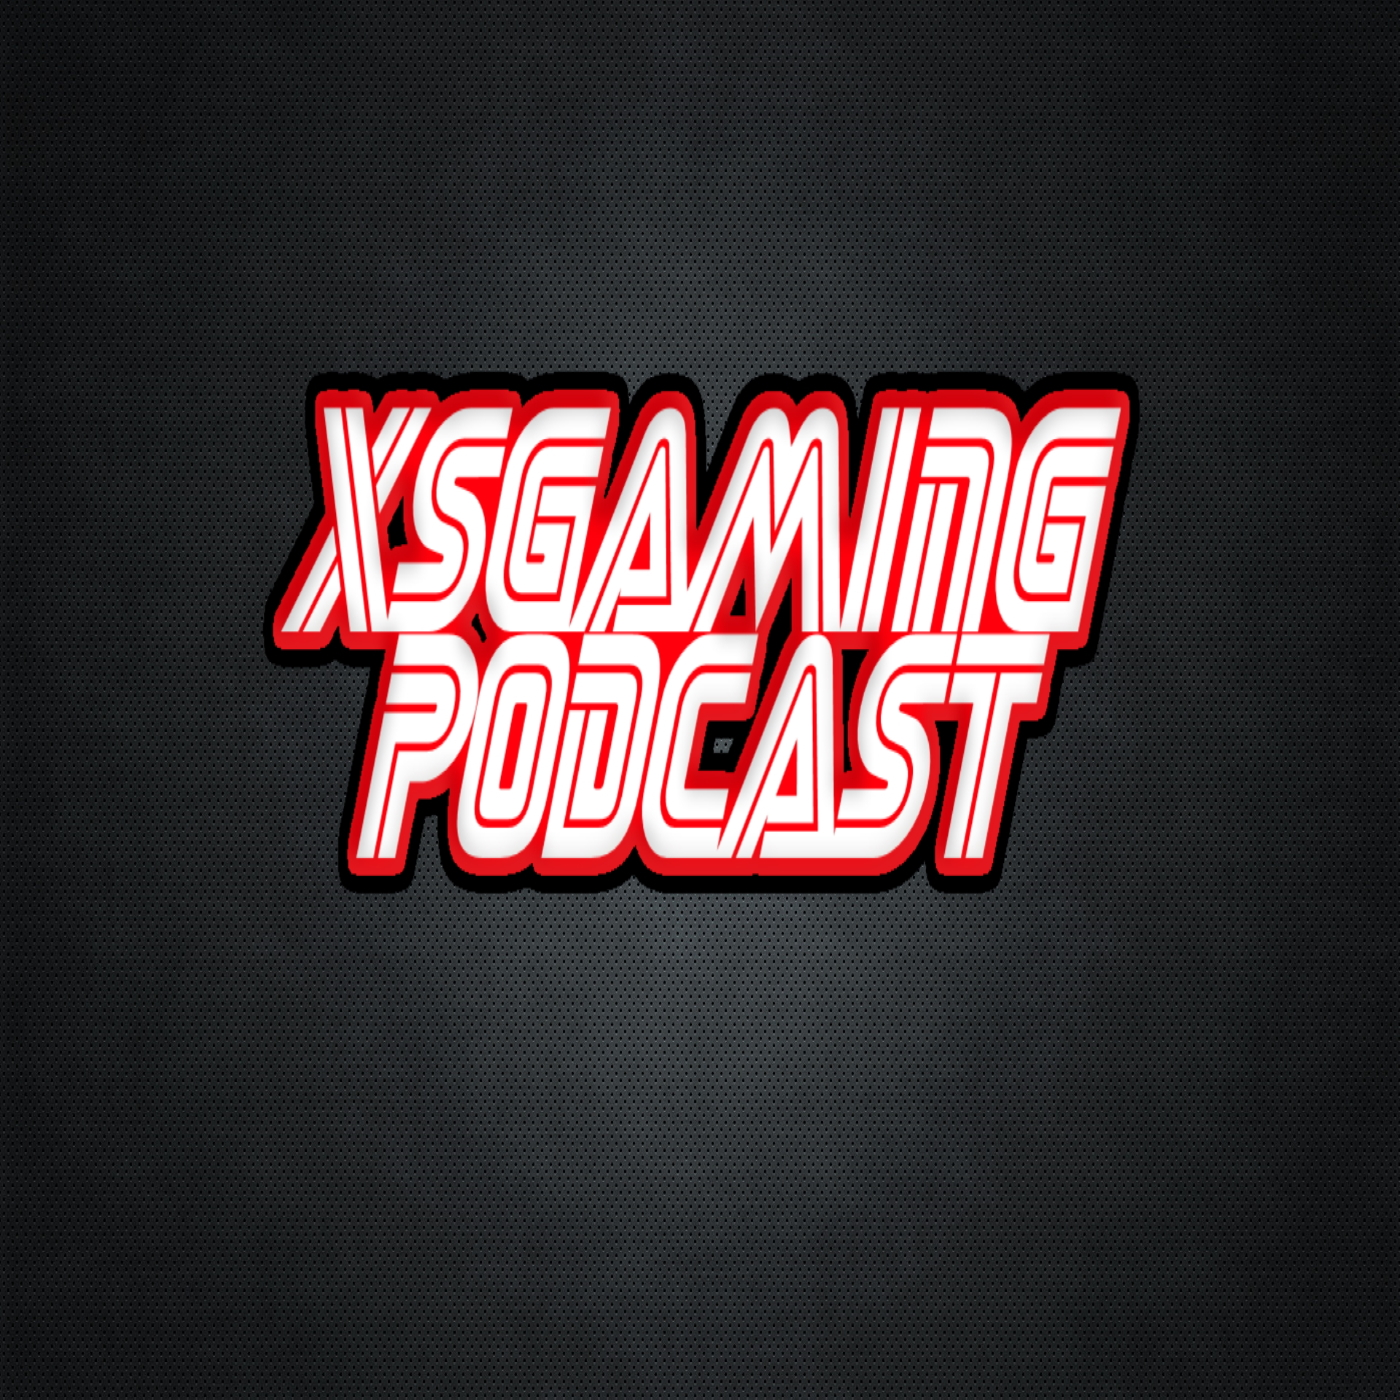 XS Gaming Podcast